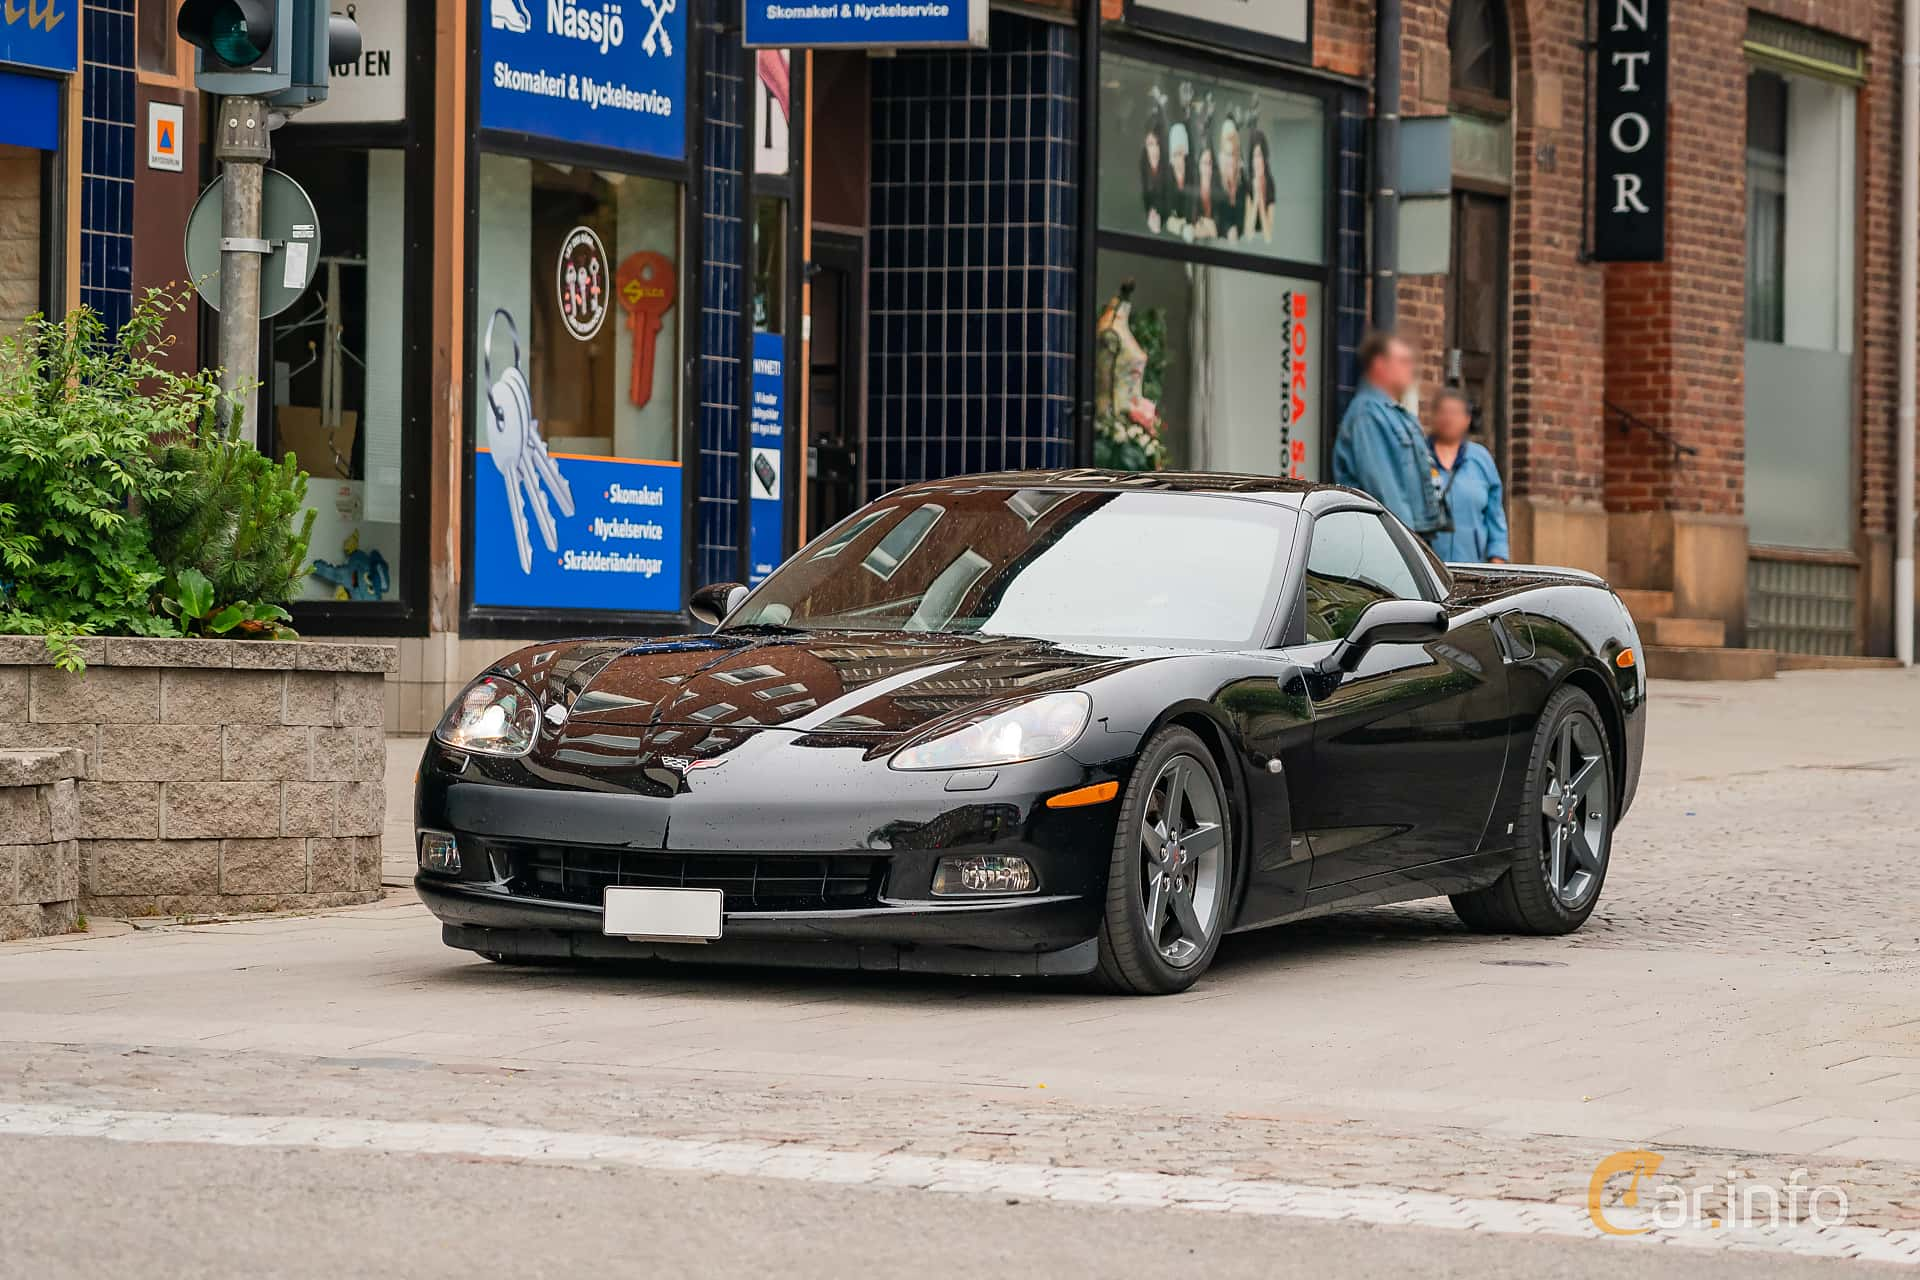 Chevrolet Corvette 6.0 V8 Automatic, 405hp, 2007 at Nässjö Cruising 2019